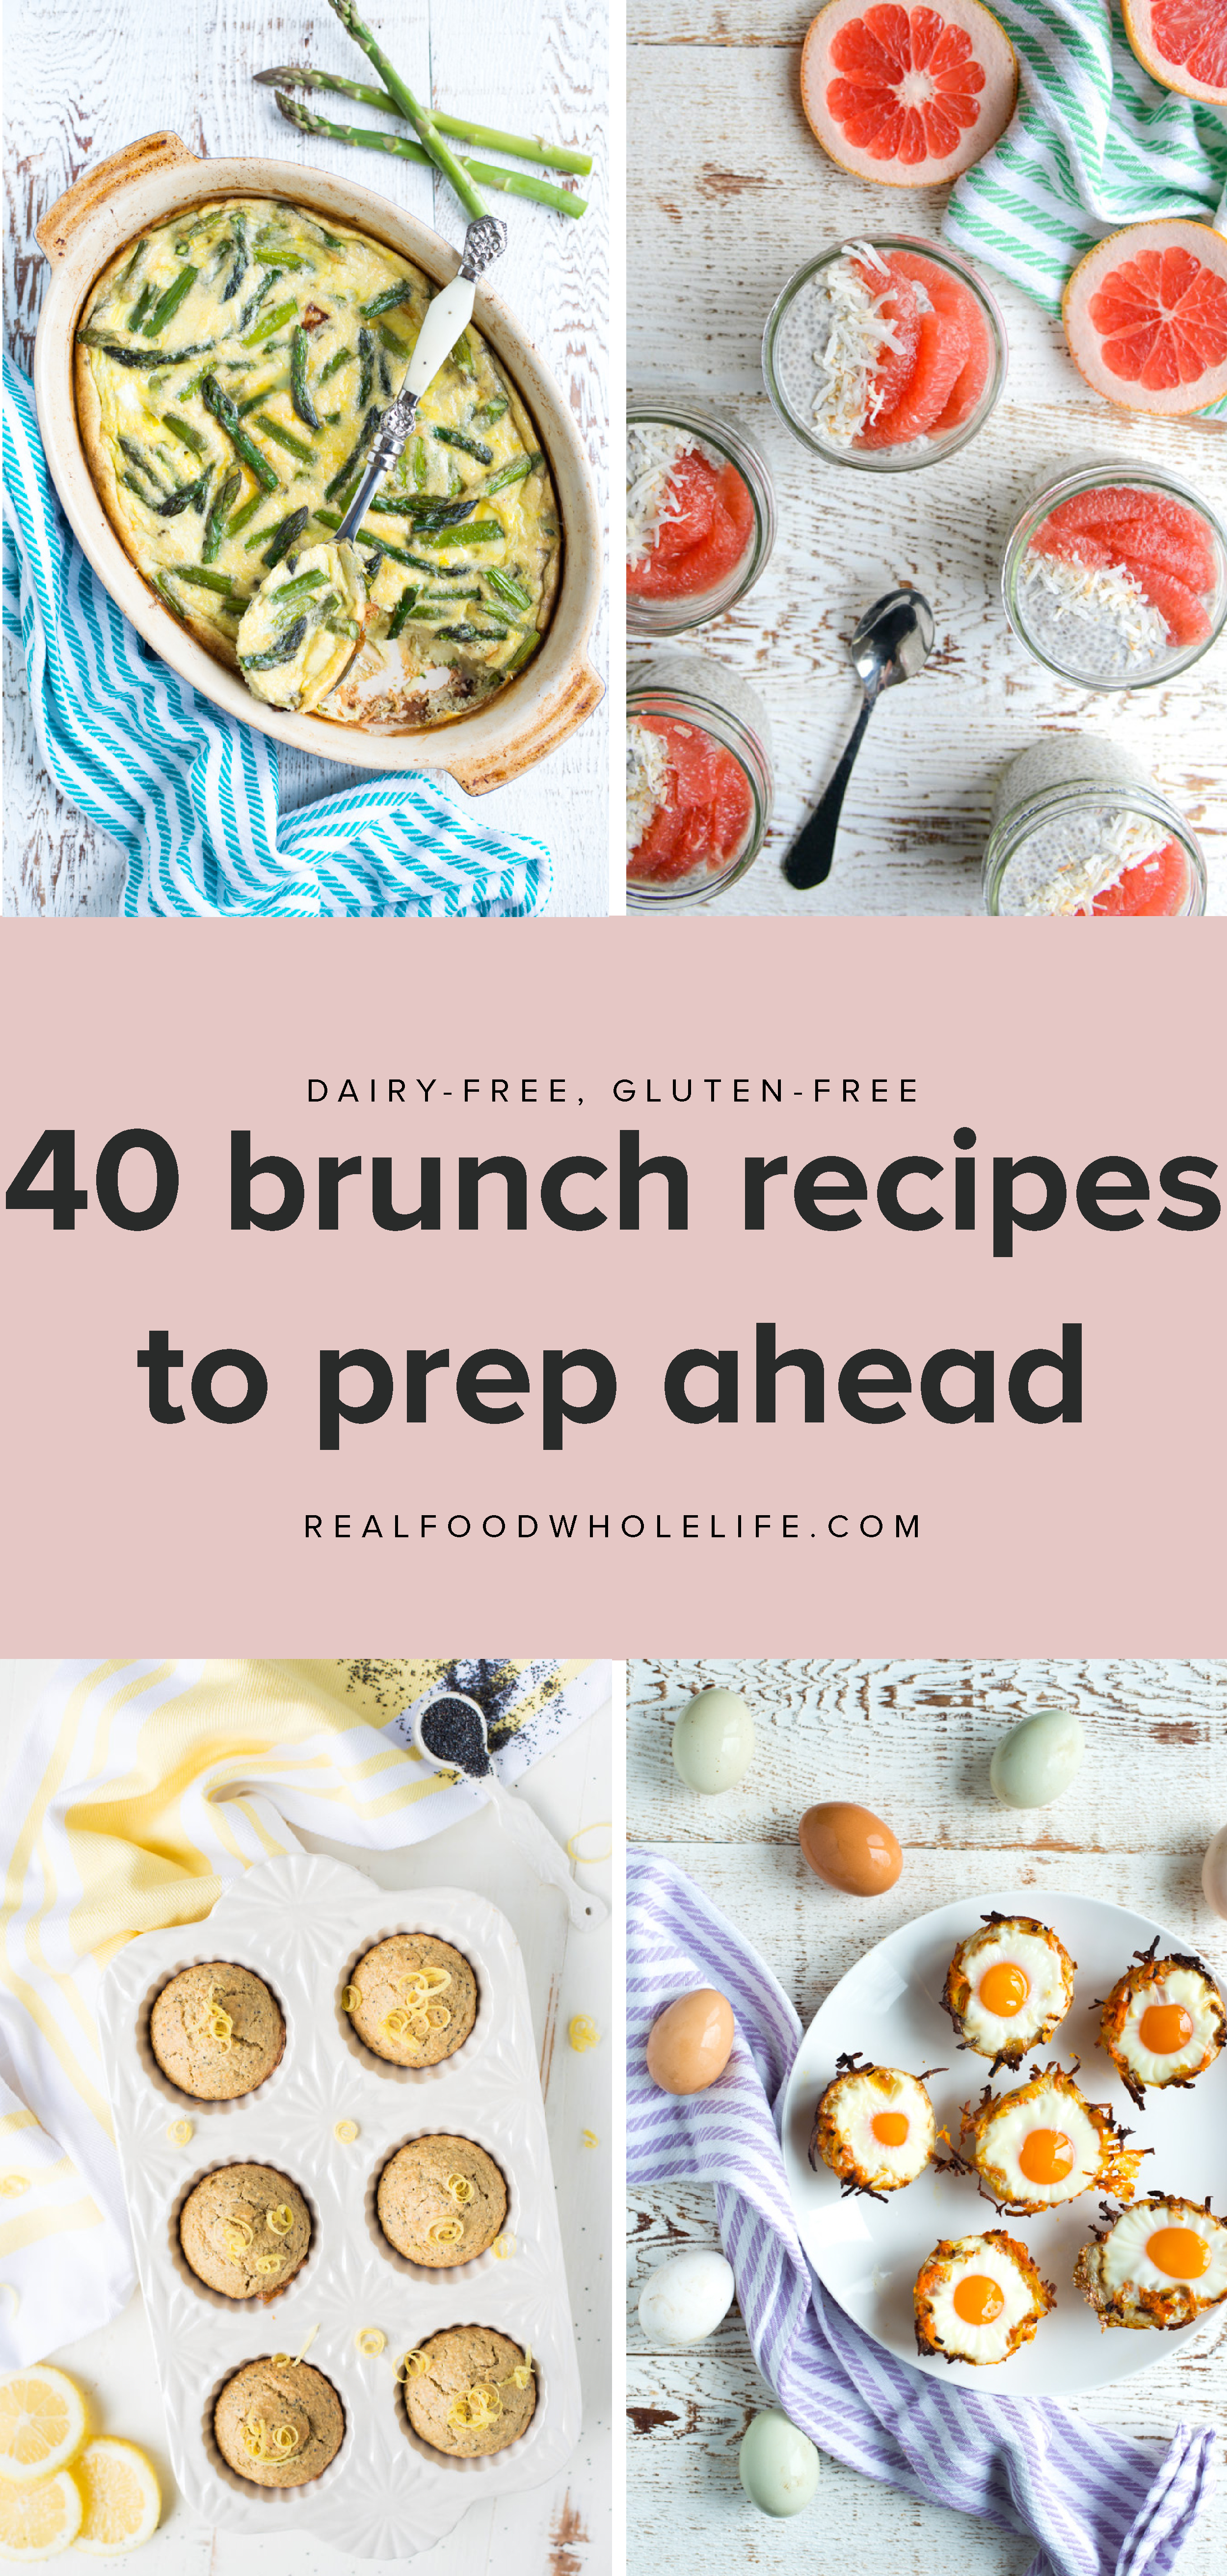 Simple Healthy Make Ahead Brunch Recipes Real Food Whole Life